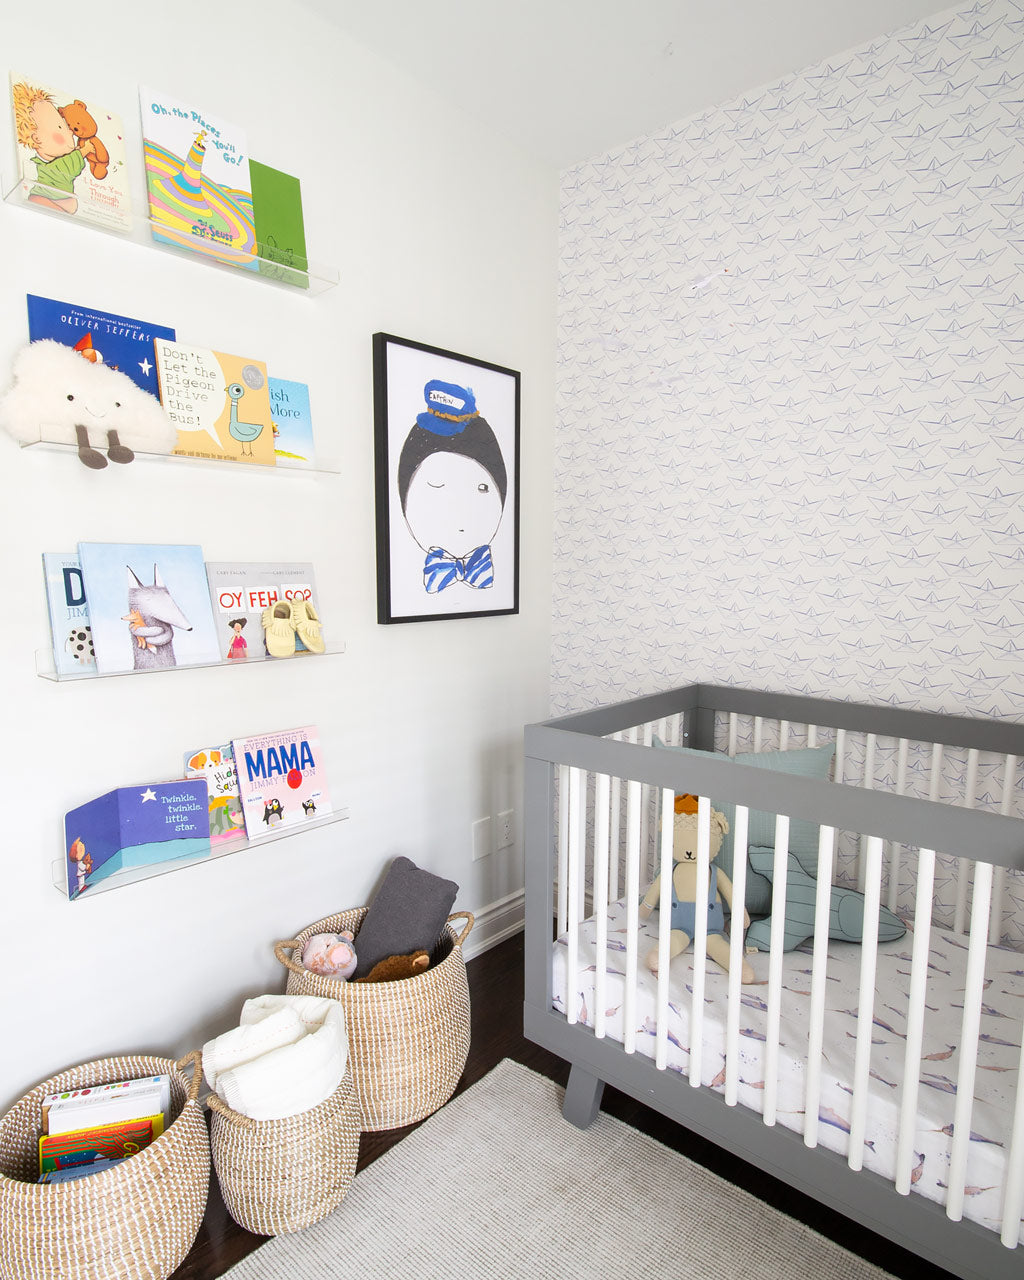 Modern style baby boys nursery with nautical theme and colorful eclectic interior decor